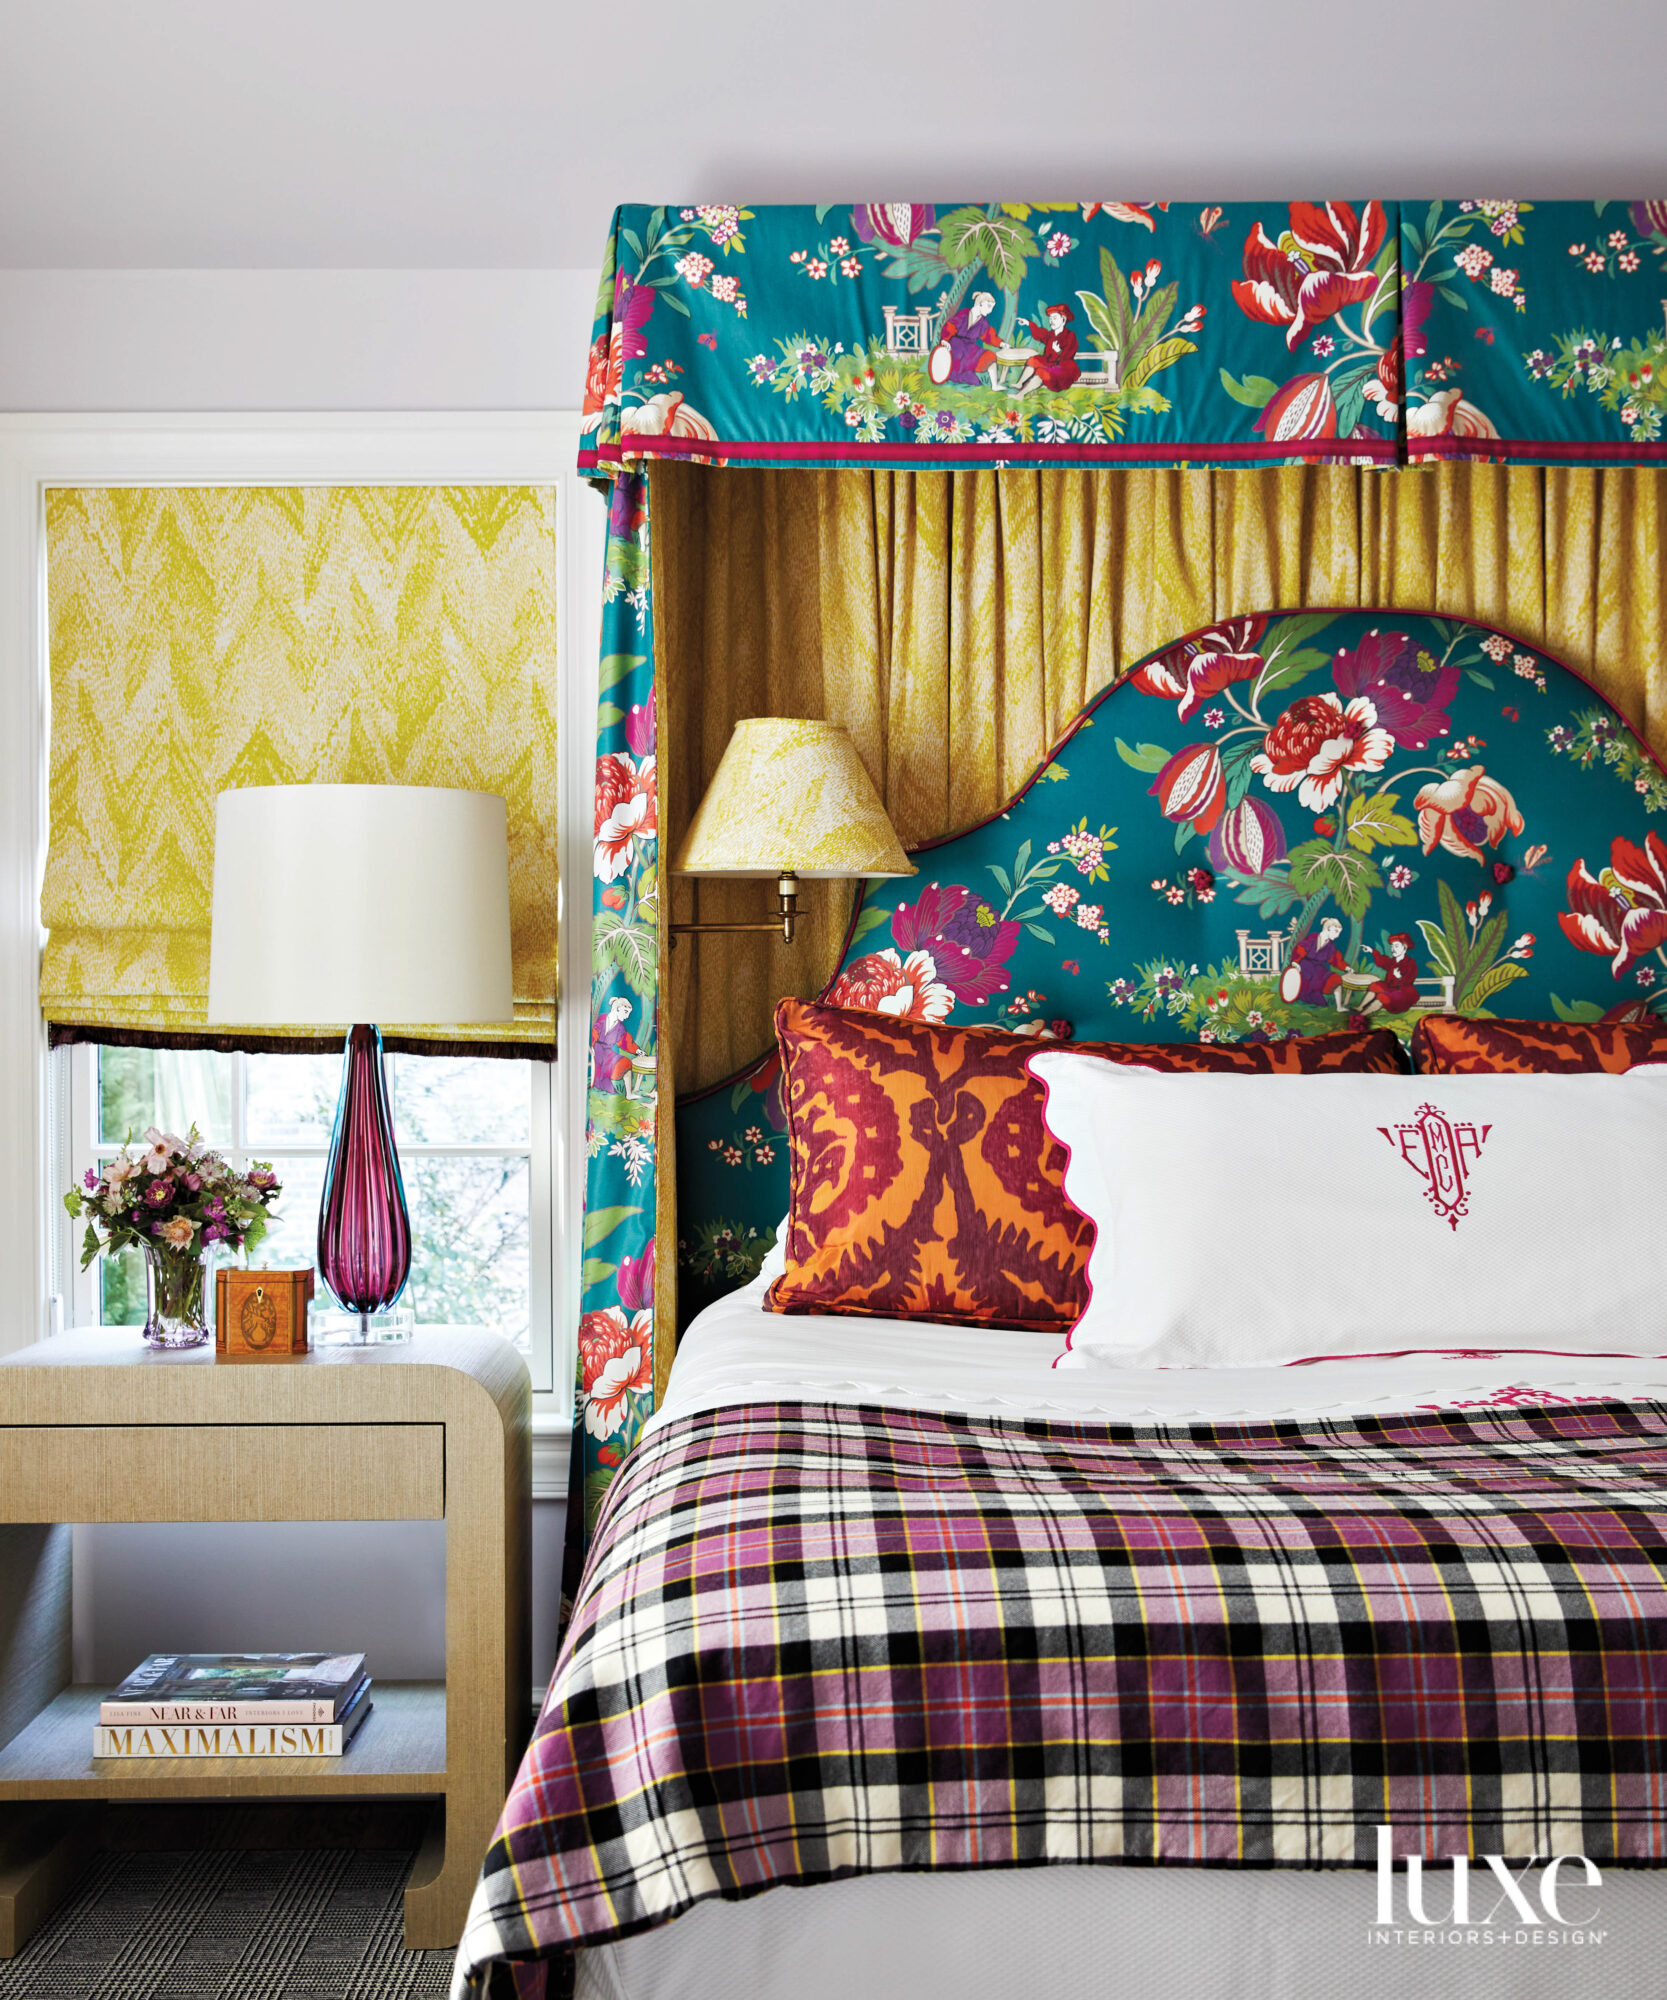 Bed with floral headboard and...